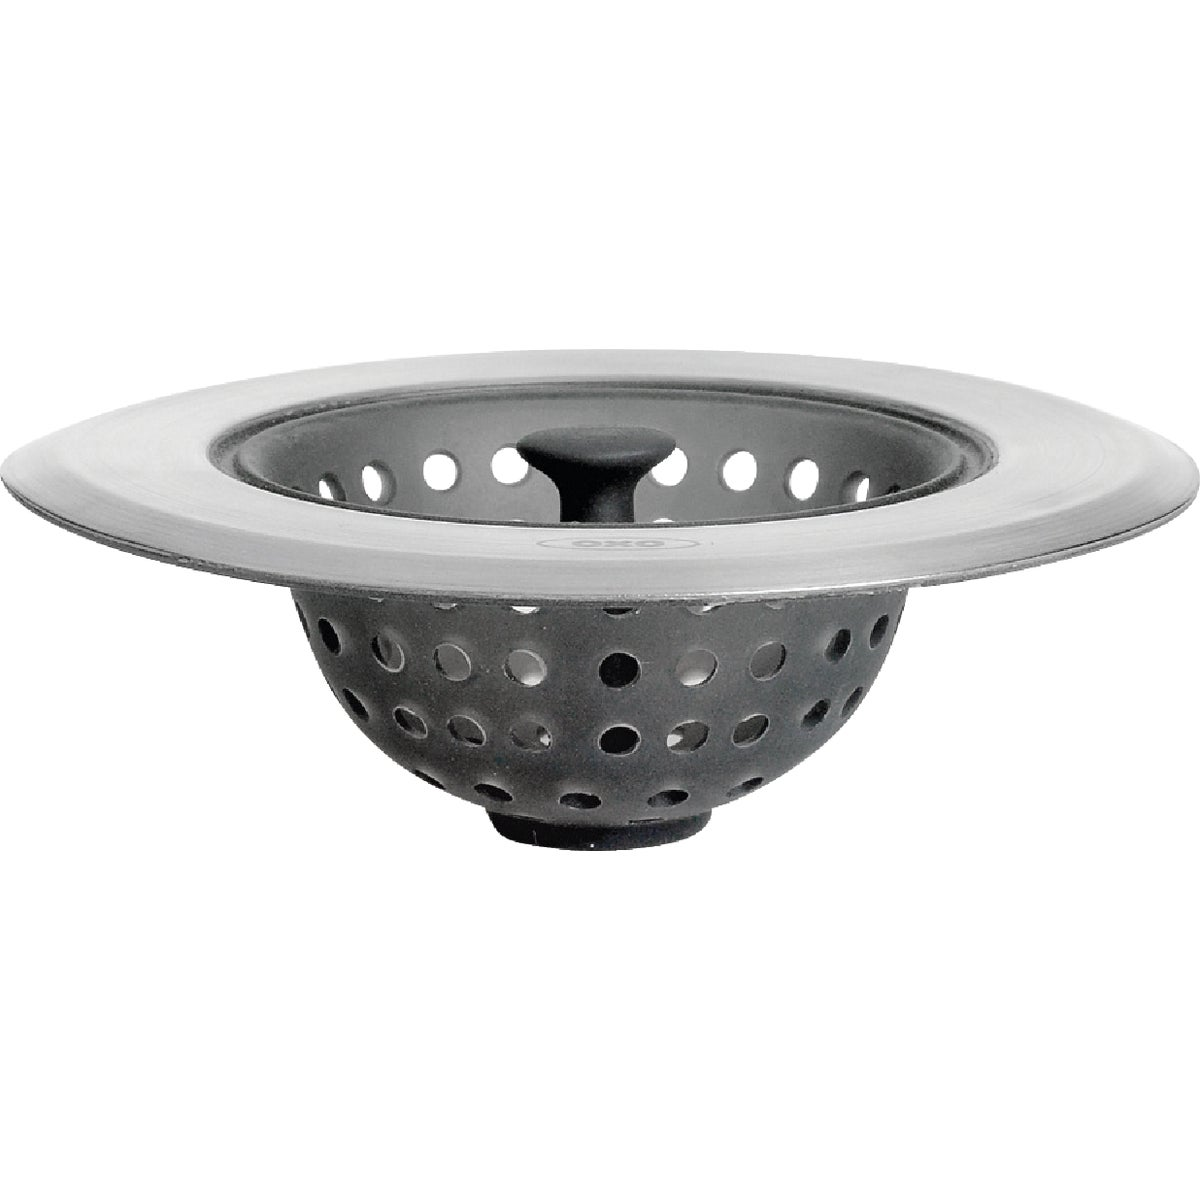 SILICONE SINK STRAINER - 1308200 by Oxo International